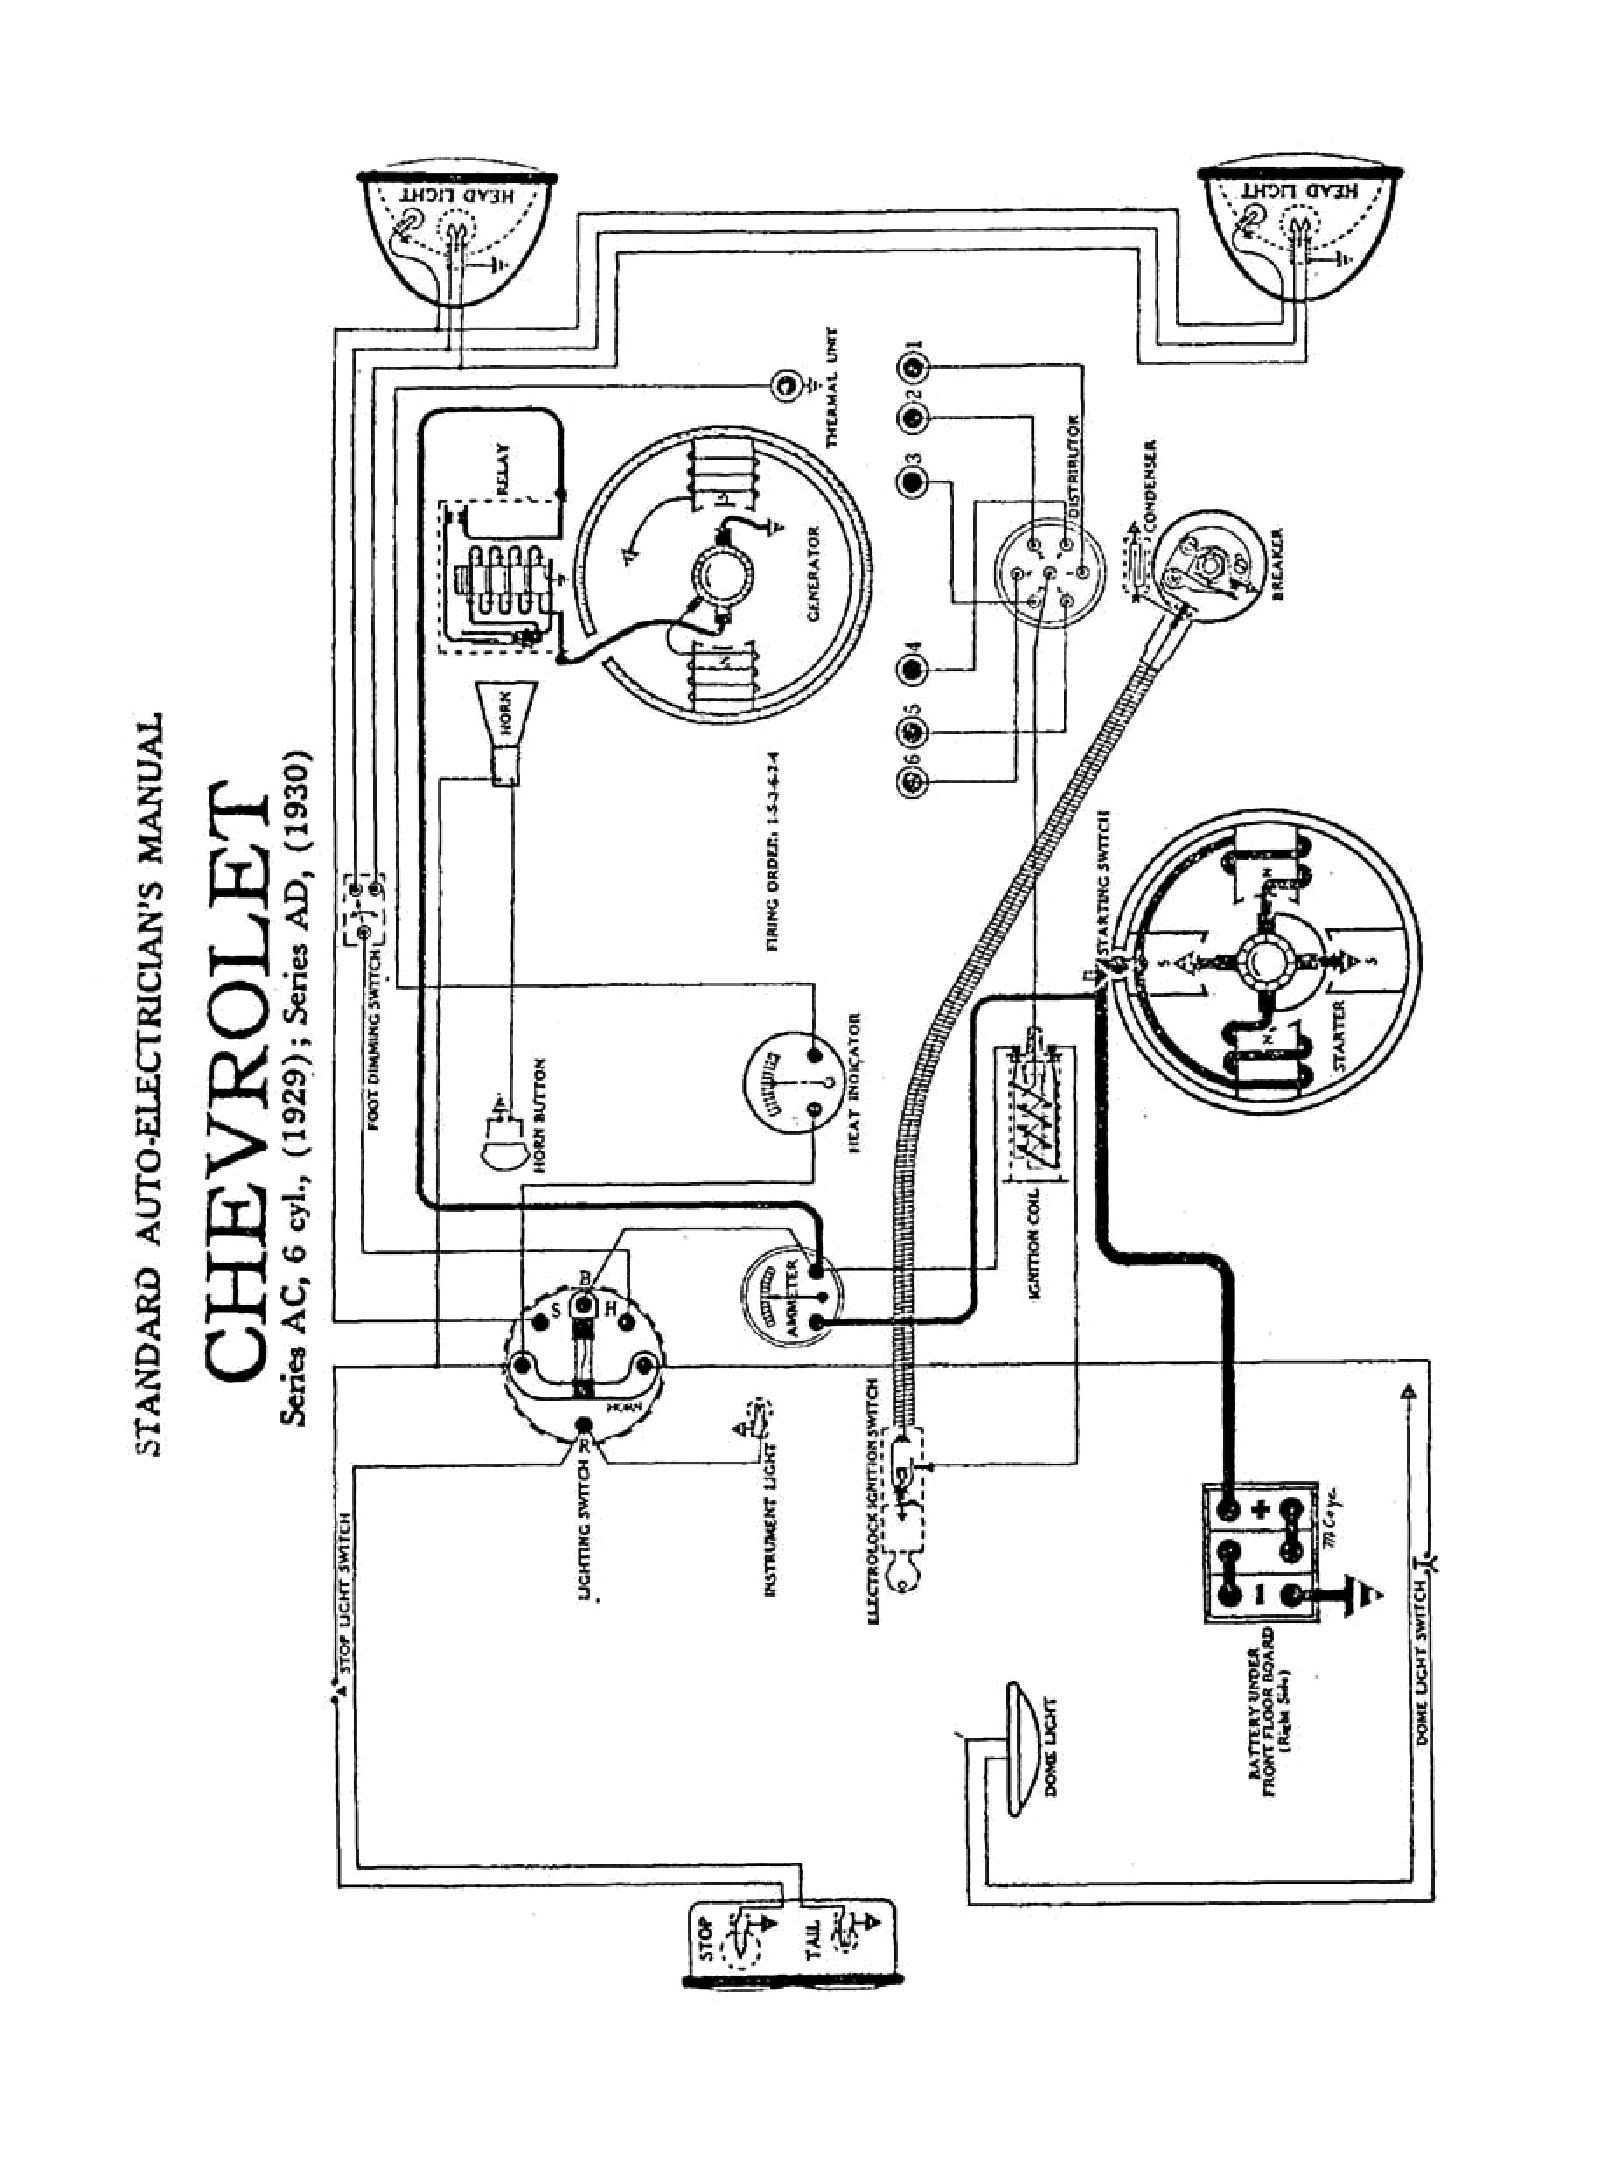 Points Distributor Wiring Diagram General Motors | Wiring Diagram - General Motors Wiring Diagram